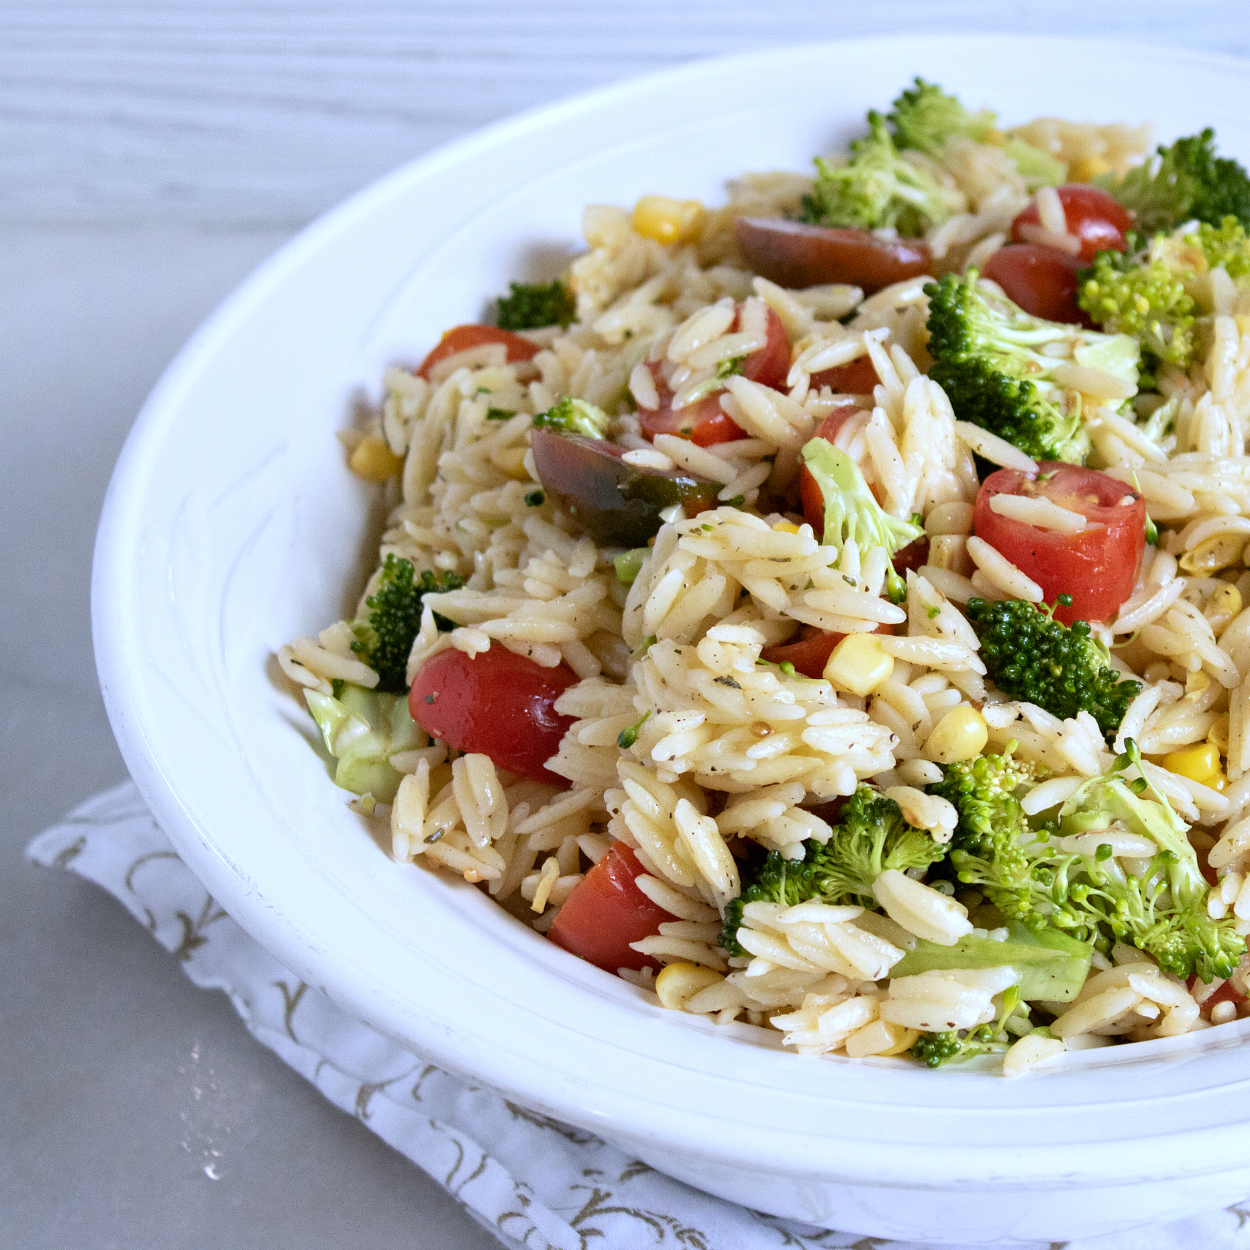 orzo pasta salad in white bowl